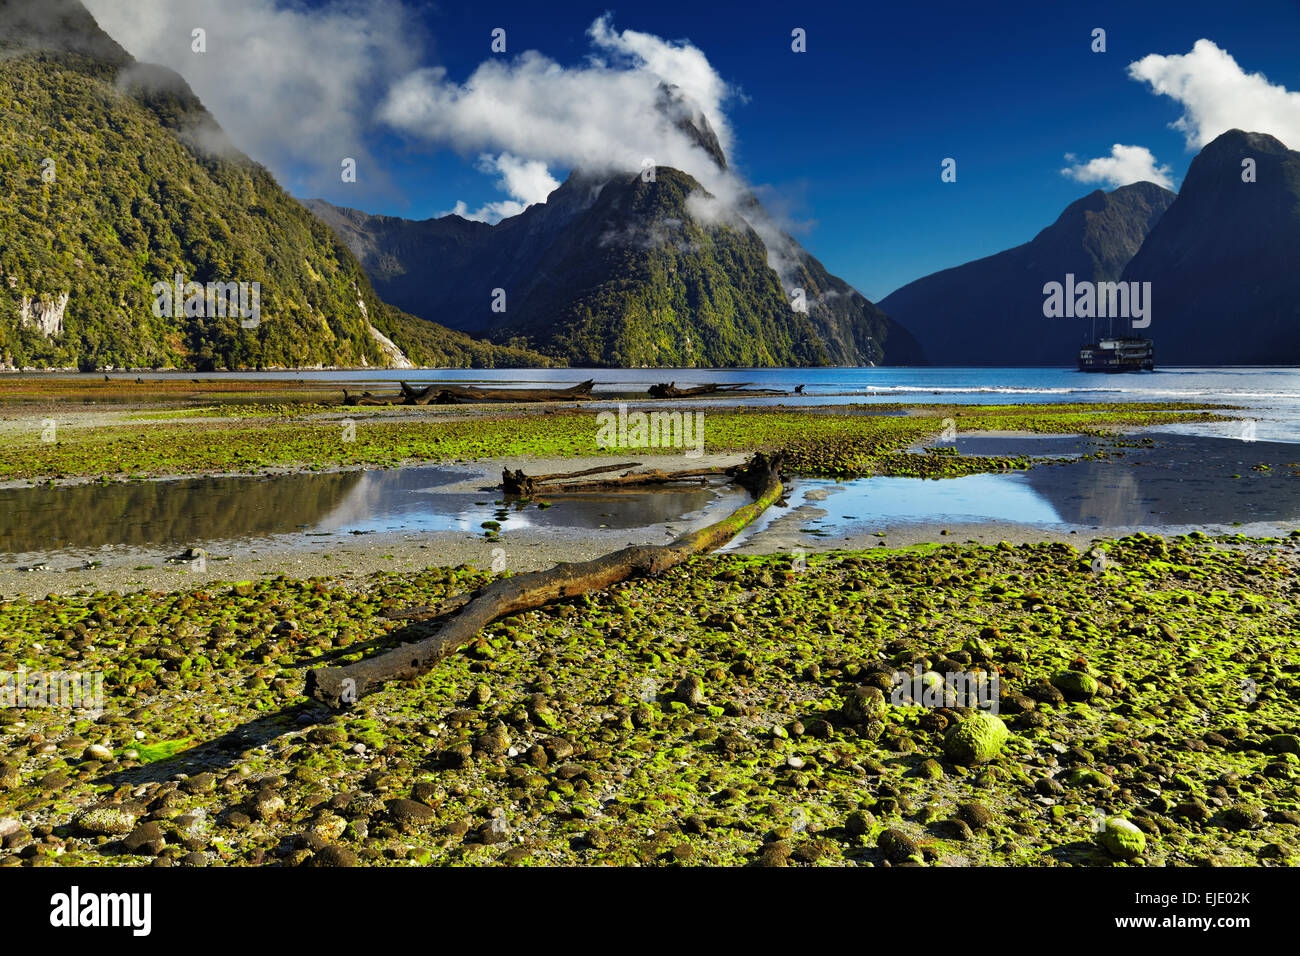 Milford Sound, île du Sud, Nouvelle-Zélande Photo Stock